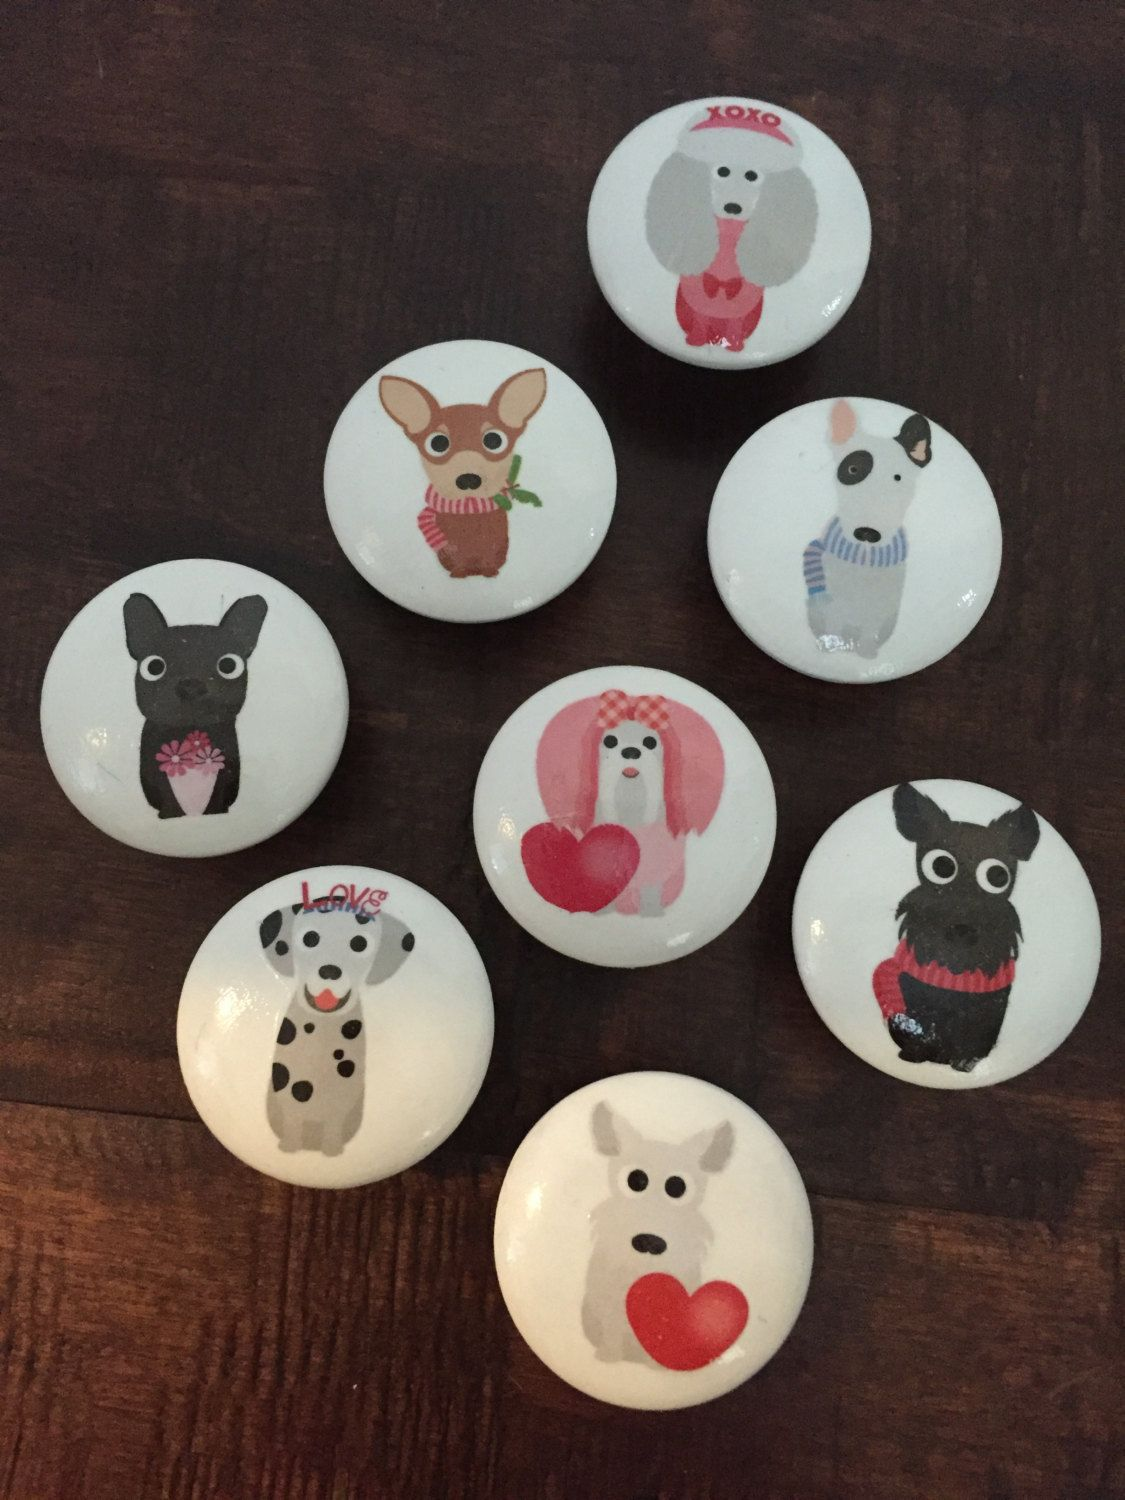 Cute Dog Inch Cabinet Knobs Drawer Pulls By HolyChicBoutiqueCo On Etsy